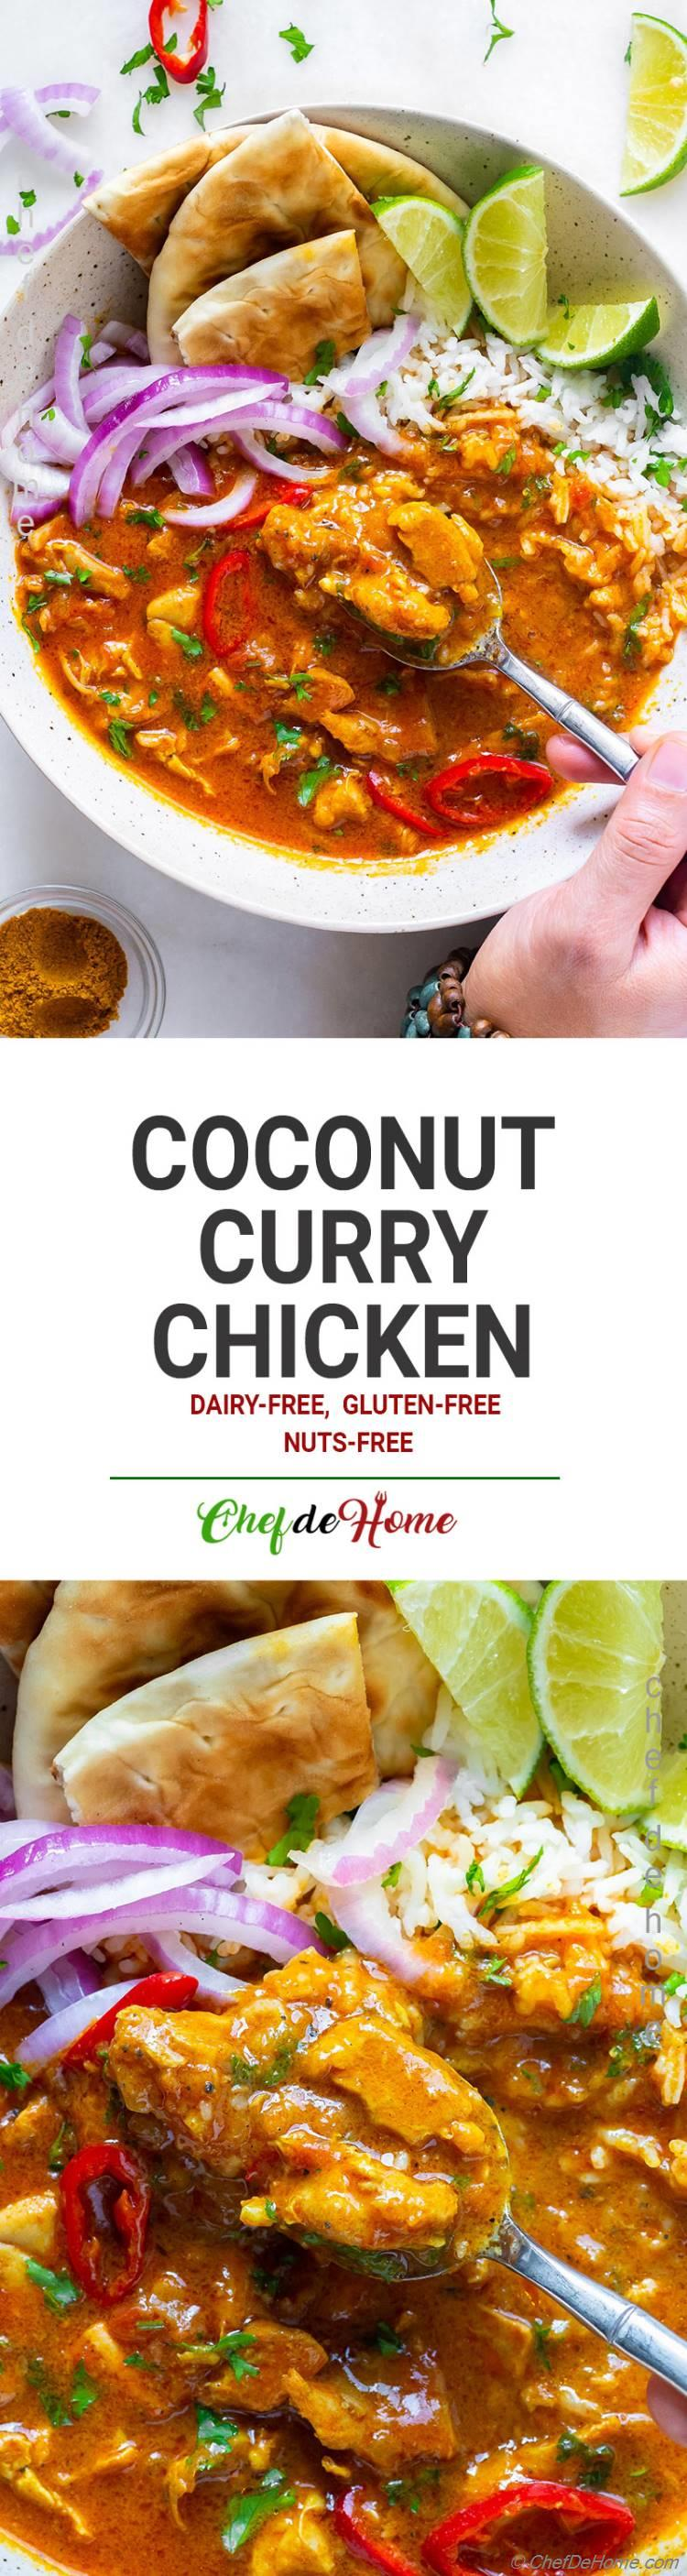 Easy and Delicious Coconut Curry Chicken